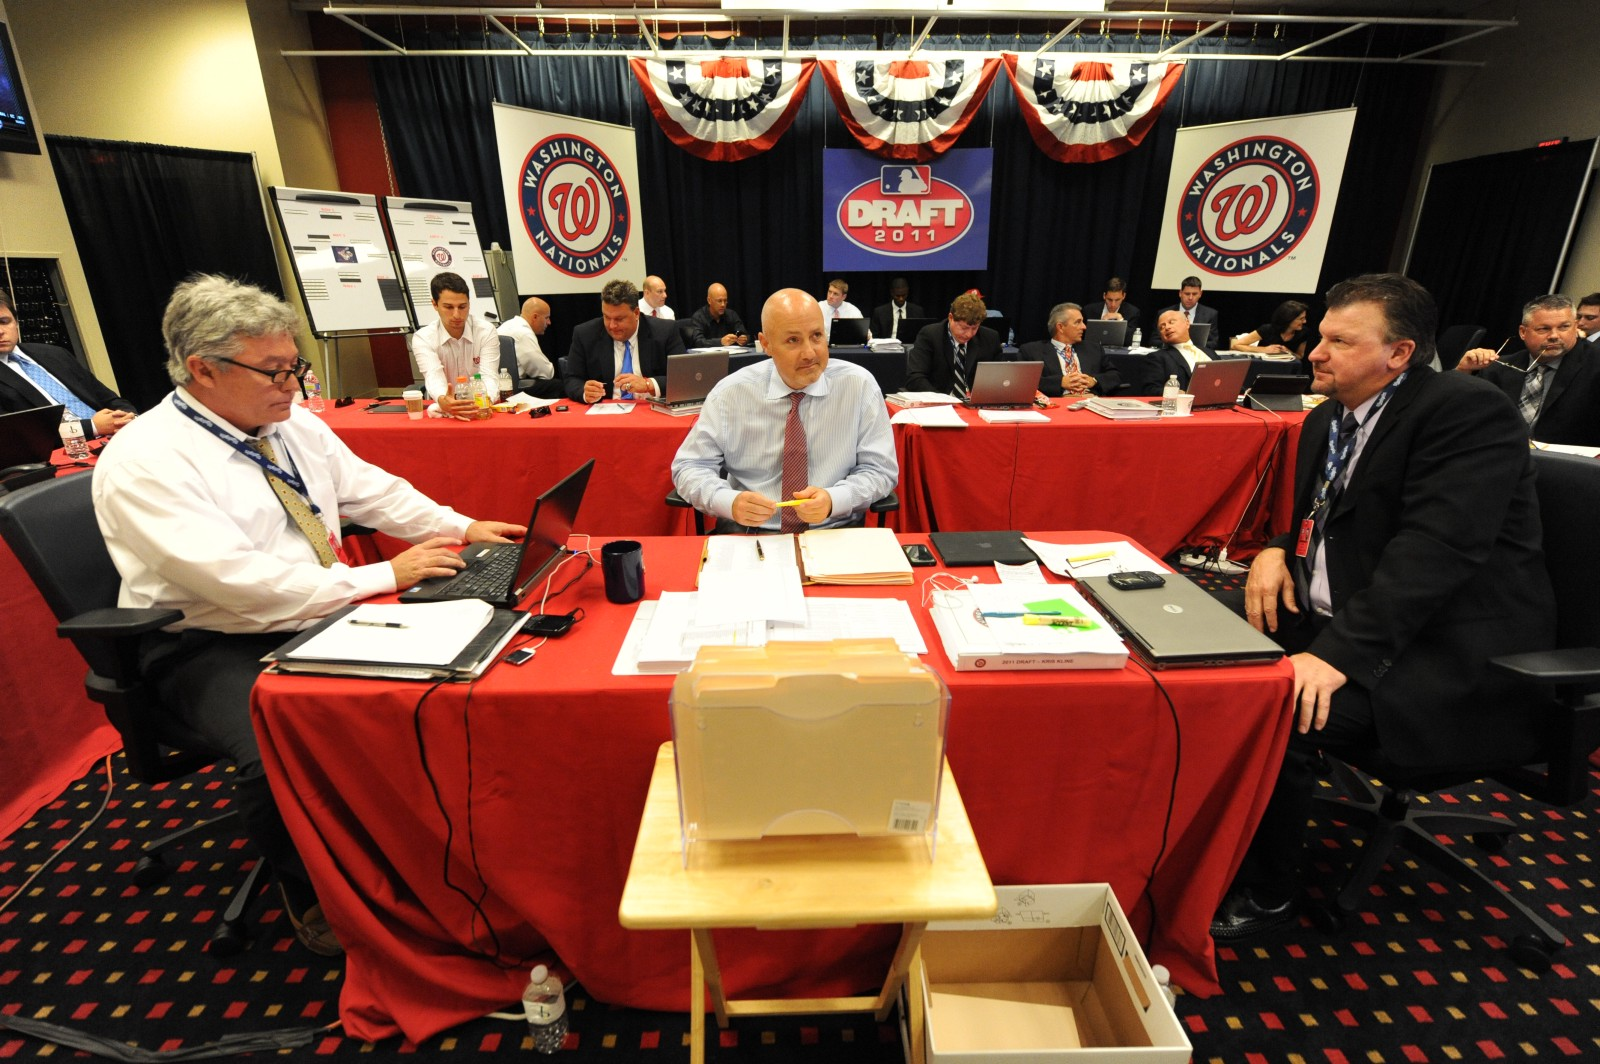 Greetings From The Nationals 2011 Draft War Room I Am John Dever Sr Director Of Baseball Media Relations And Collaborating With